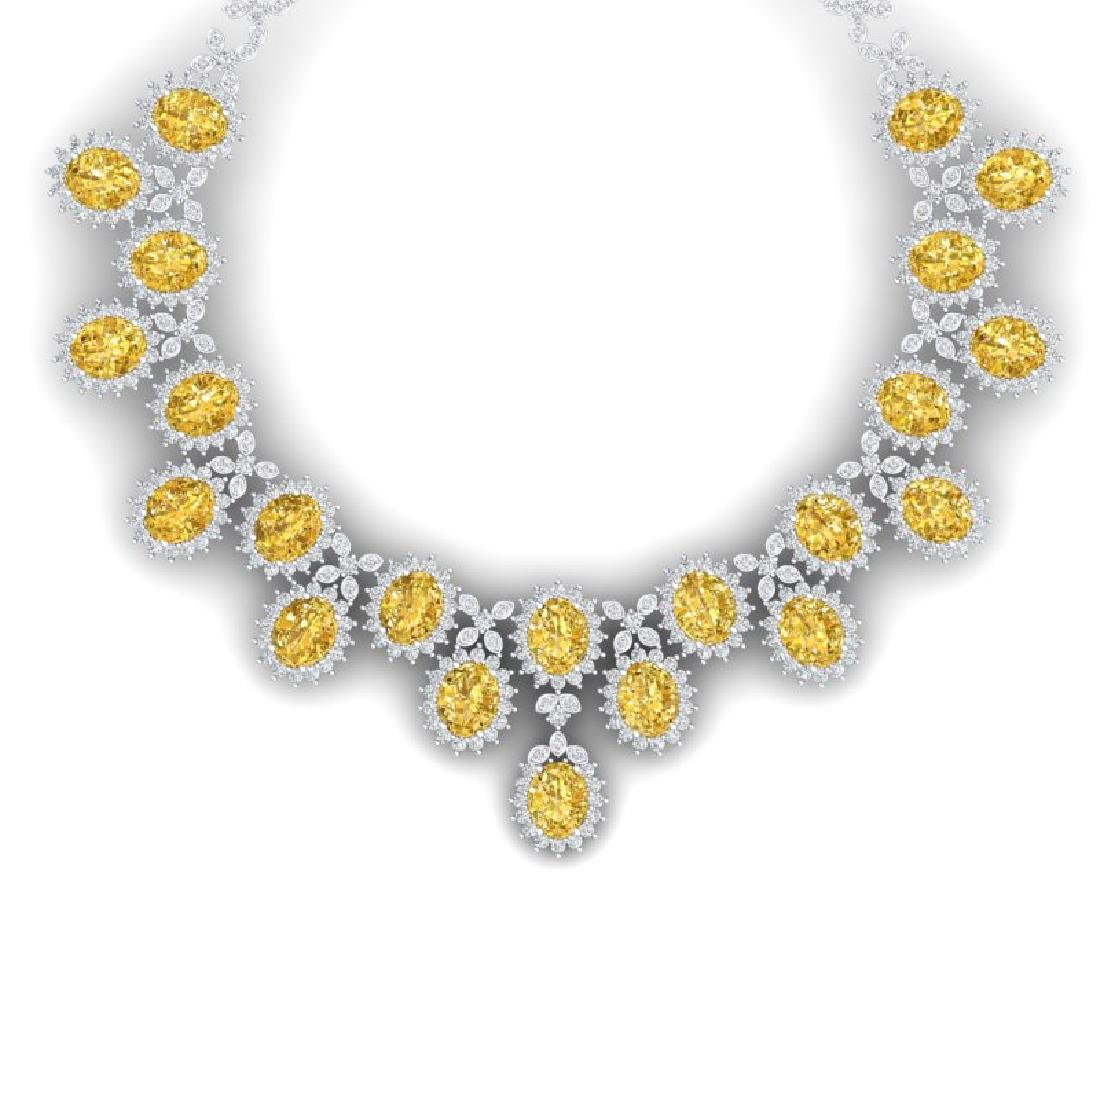 76 CTW Royalty Canary Citrine & VS Diamond Necklace 18K